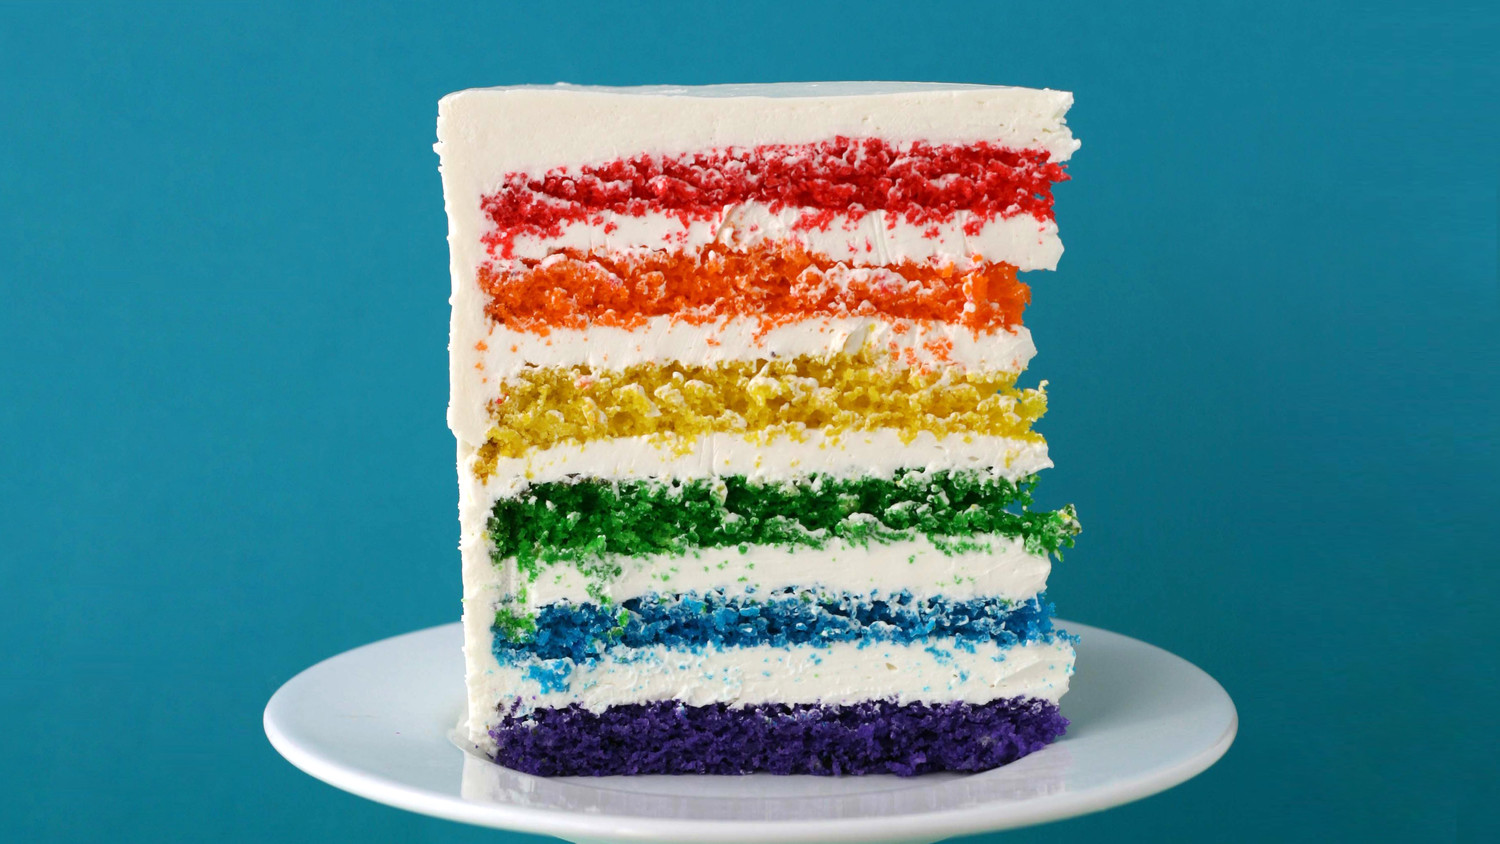 Resep Rianbow Cake